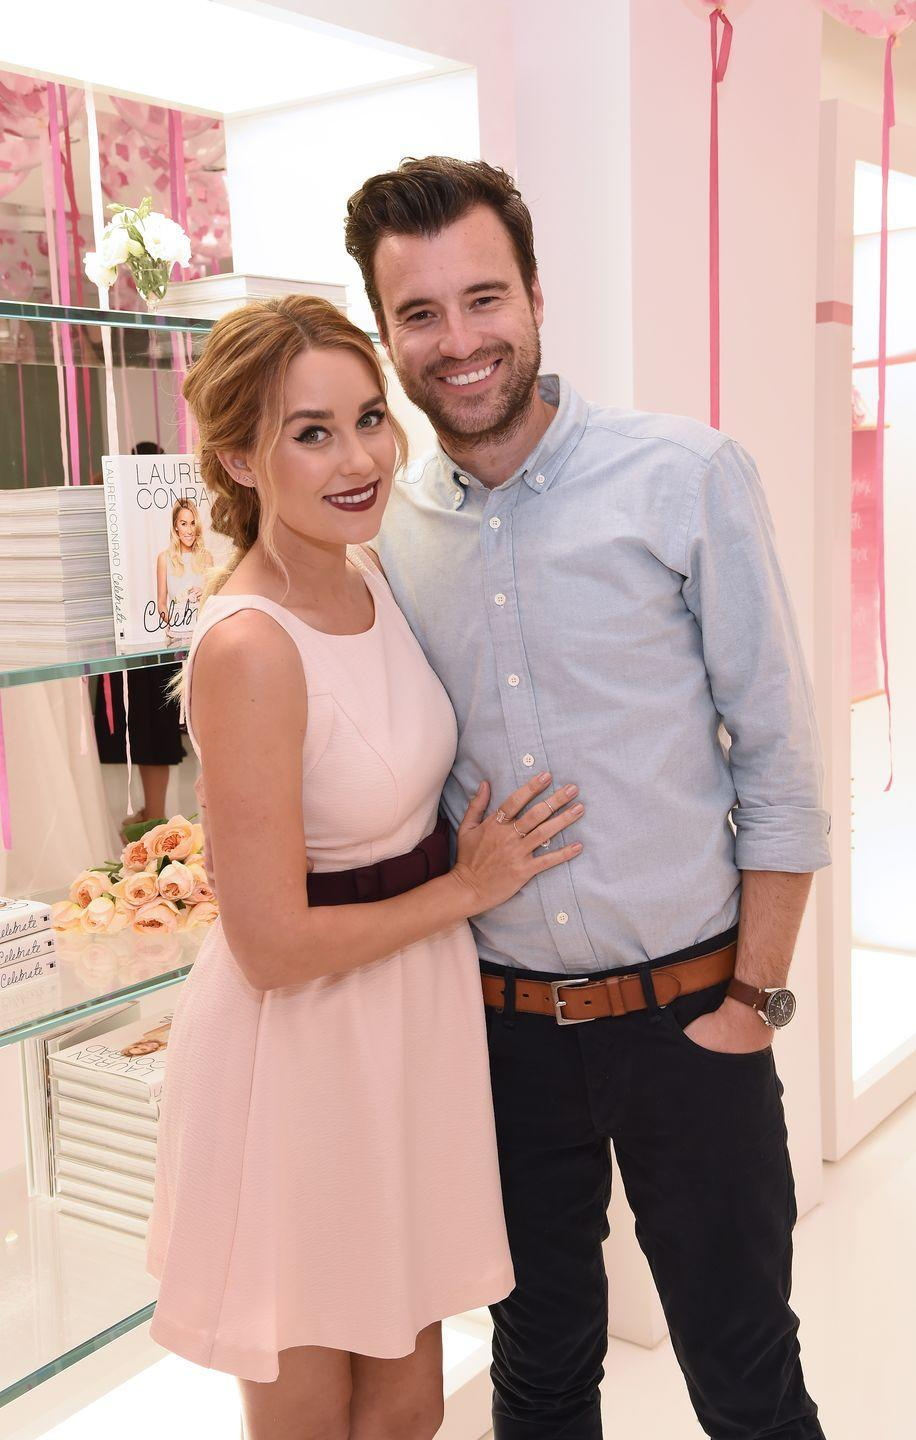 "<p>Lauren and William were set up on a blind date for Valentine's Day in 2012. ""I met my husband when I was 16 and sitting onstage at one of his concerts. Ten years later we were set up on a blind date,"" <a href=""https://laurenconrad.com/blog/2016/08/ask-lauren-25-things-you-didnt-know-about-me/"" rel=""nofollow noopener"" target=""_blank"" data-ylk=""slk:she wrote on her blog"" class=""link rapid-noclick-resp"">she wrote on her blog</a>. </p>"